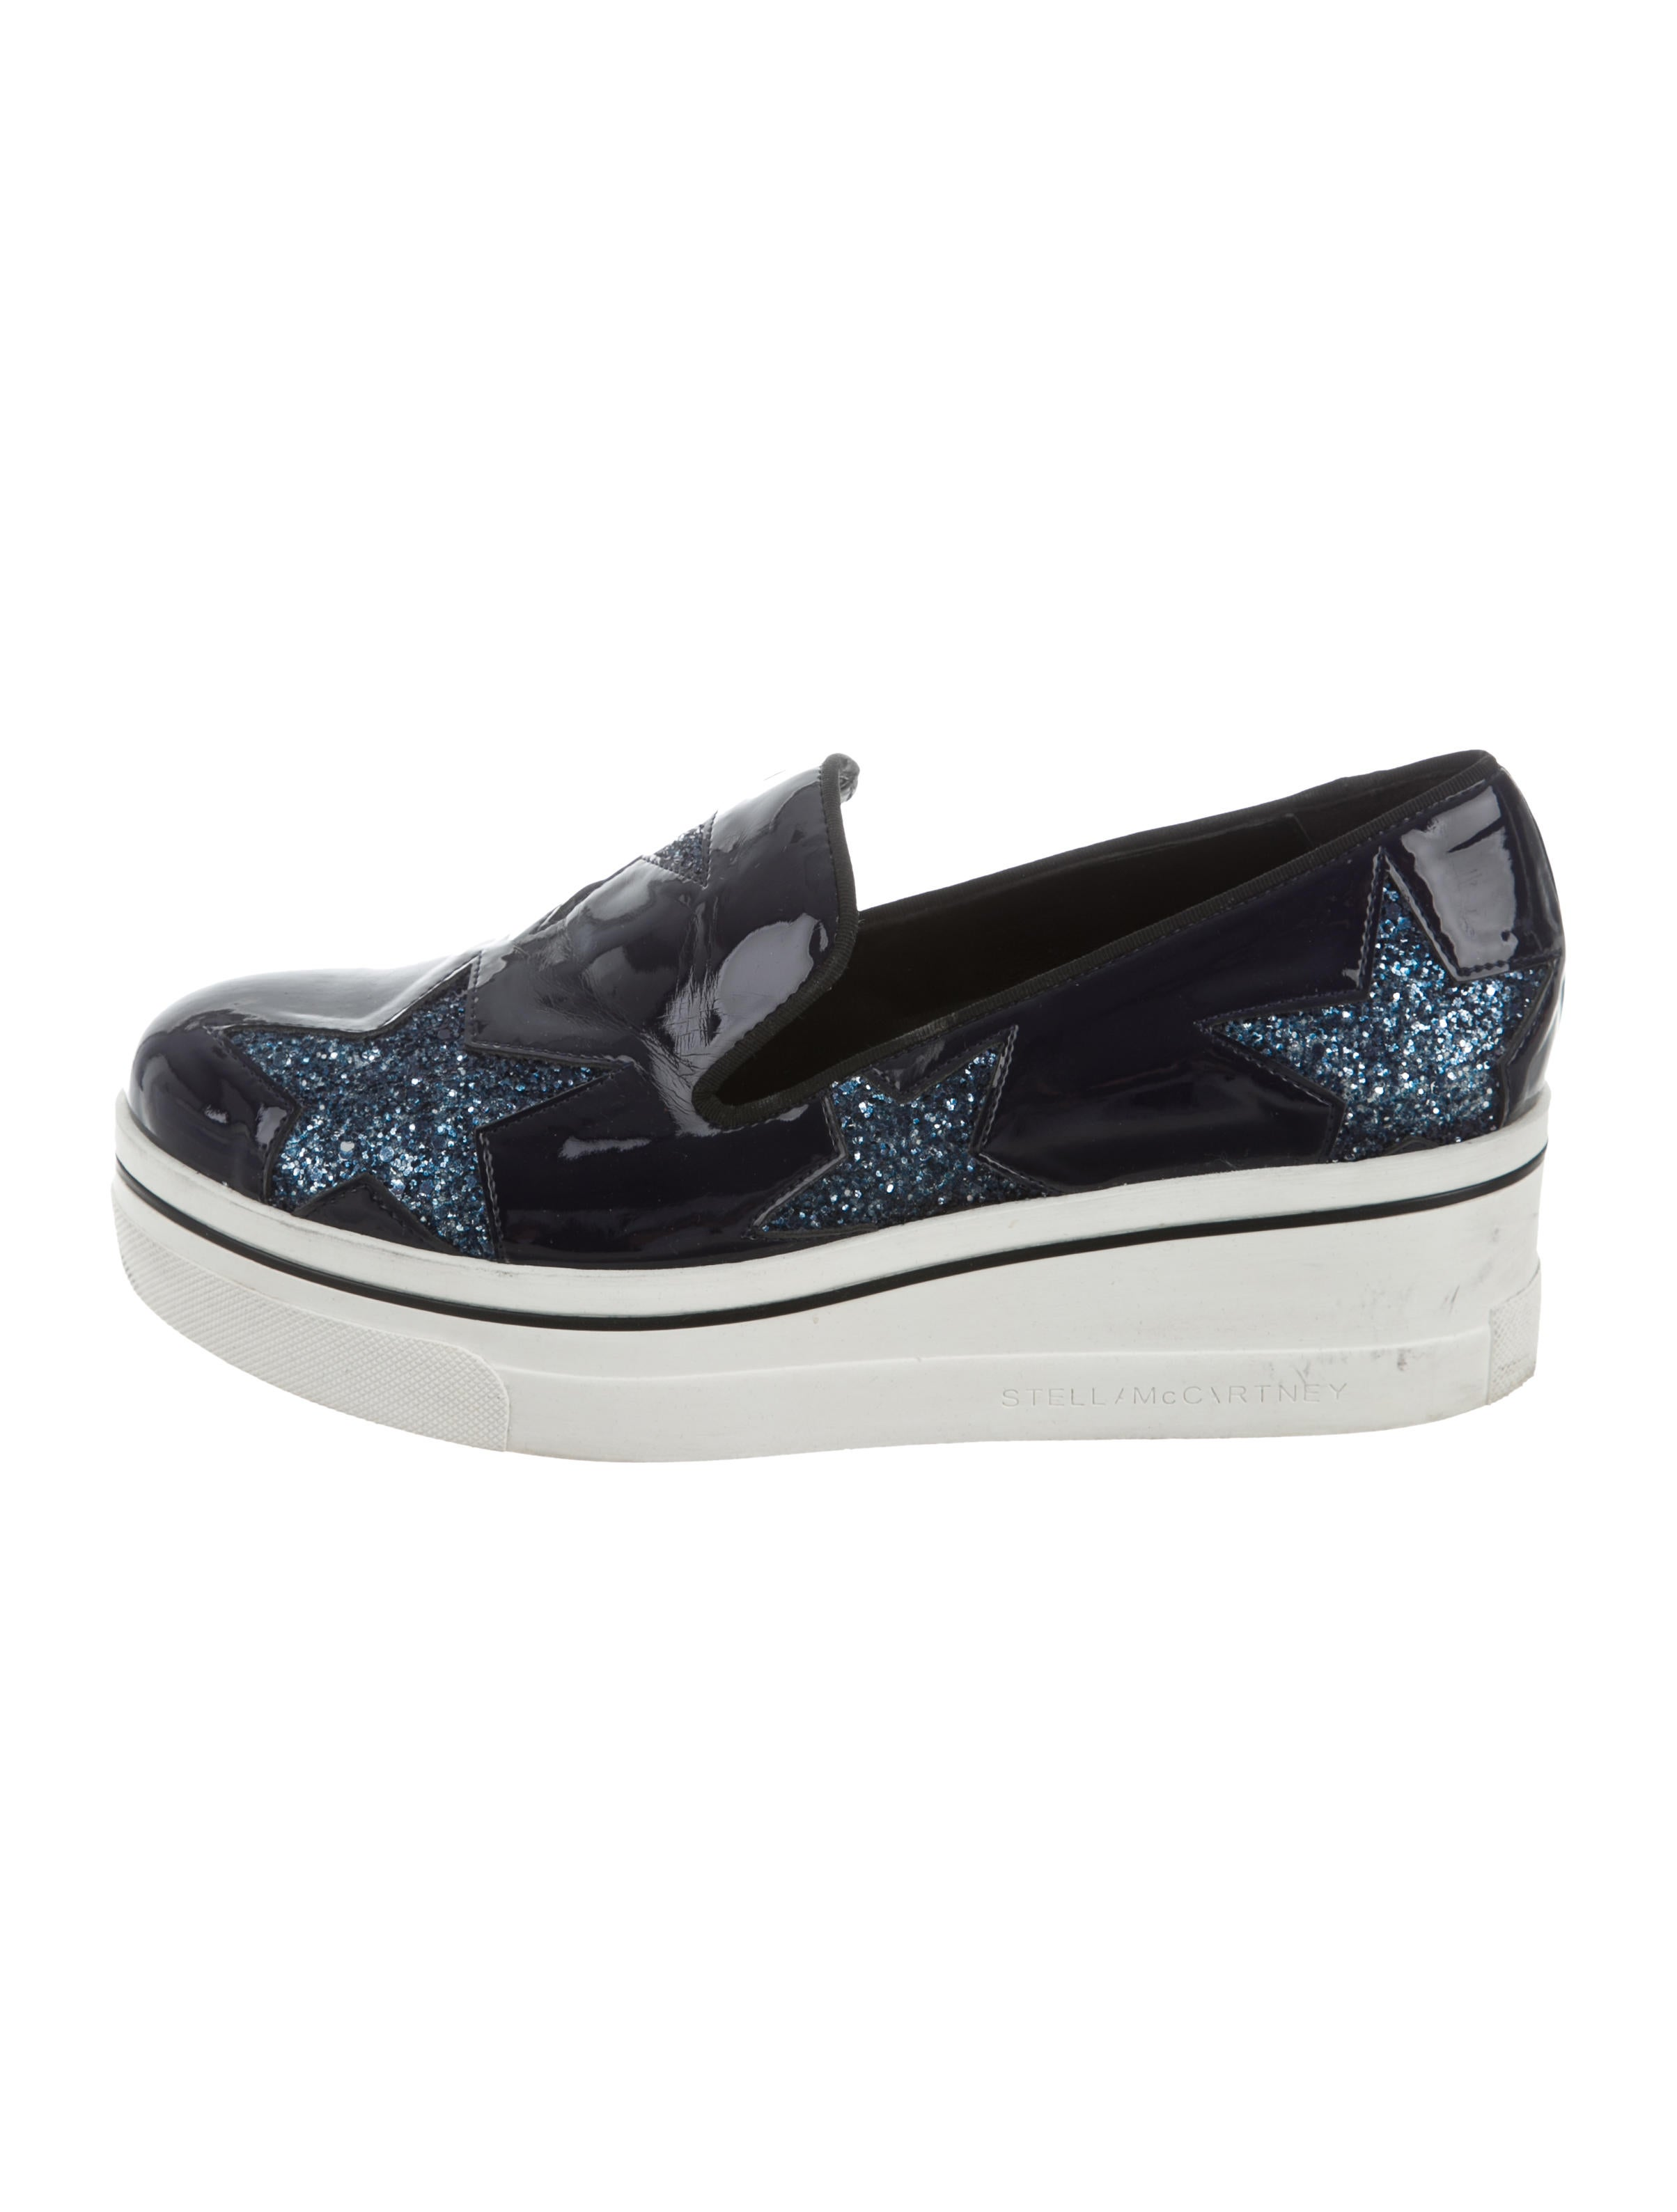 Stella McCartney Platform Slip-On Sneakers - Shoes - STL47797 | The RealReal